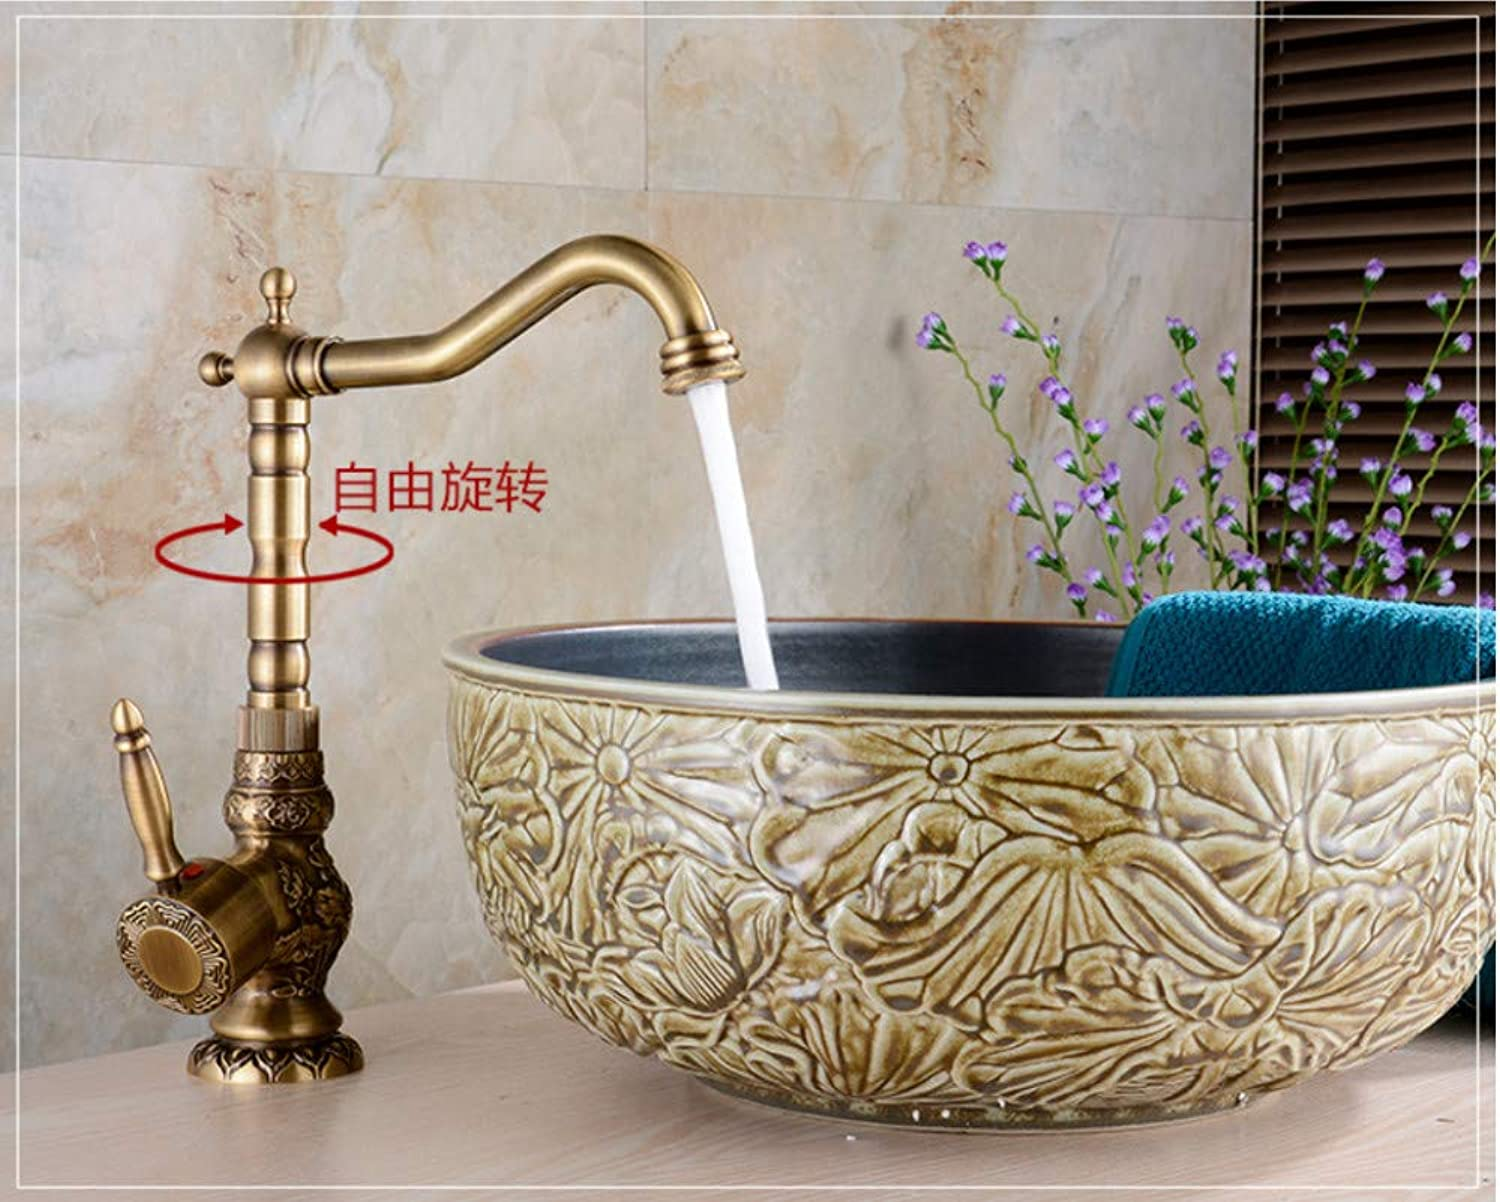 Xiehao Basin Faucets Antique Brass Bathroom Faucet Basin Carving Tap redate Single Handle Hot and Cold Water Mixer Taps Crane